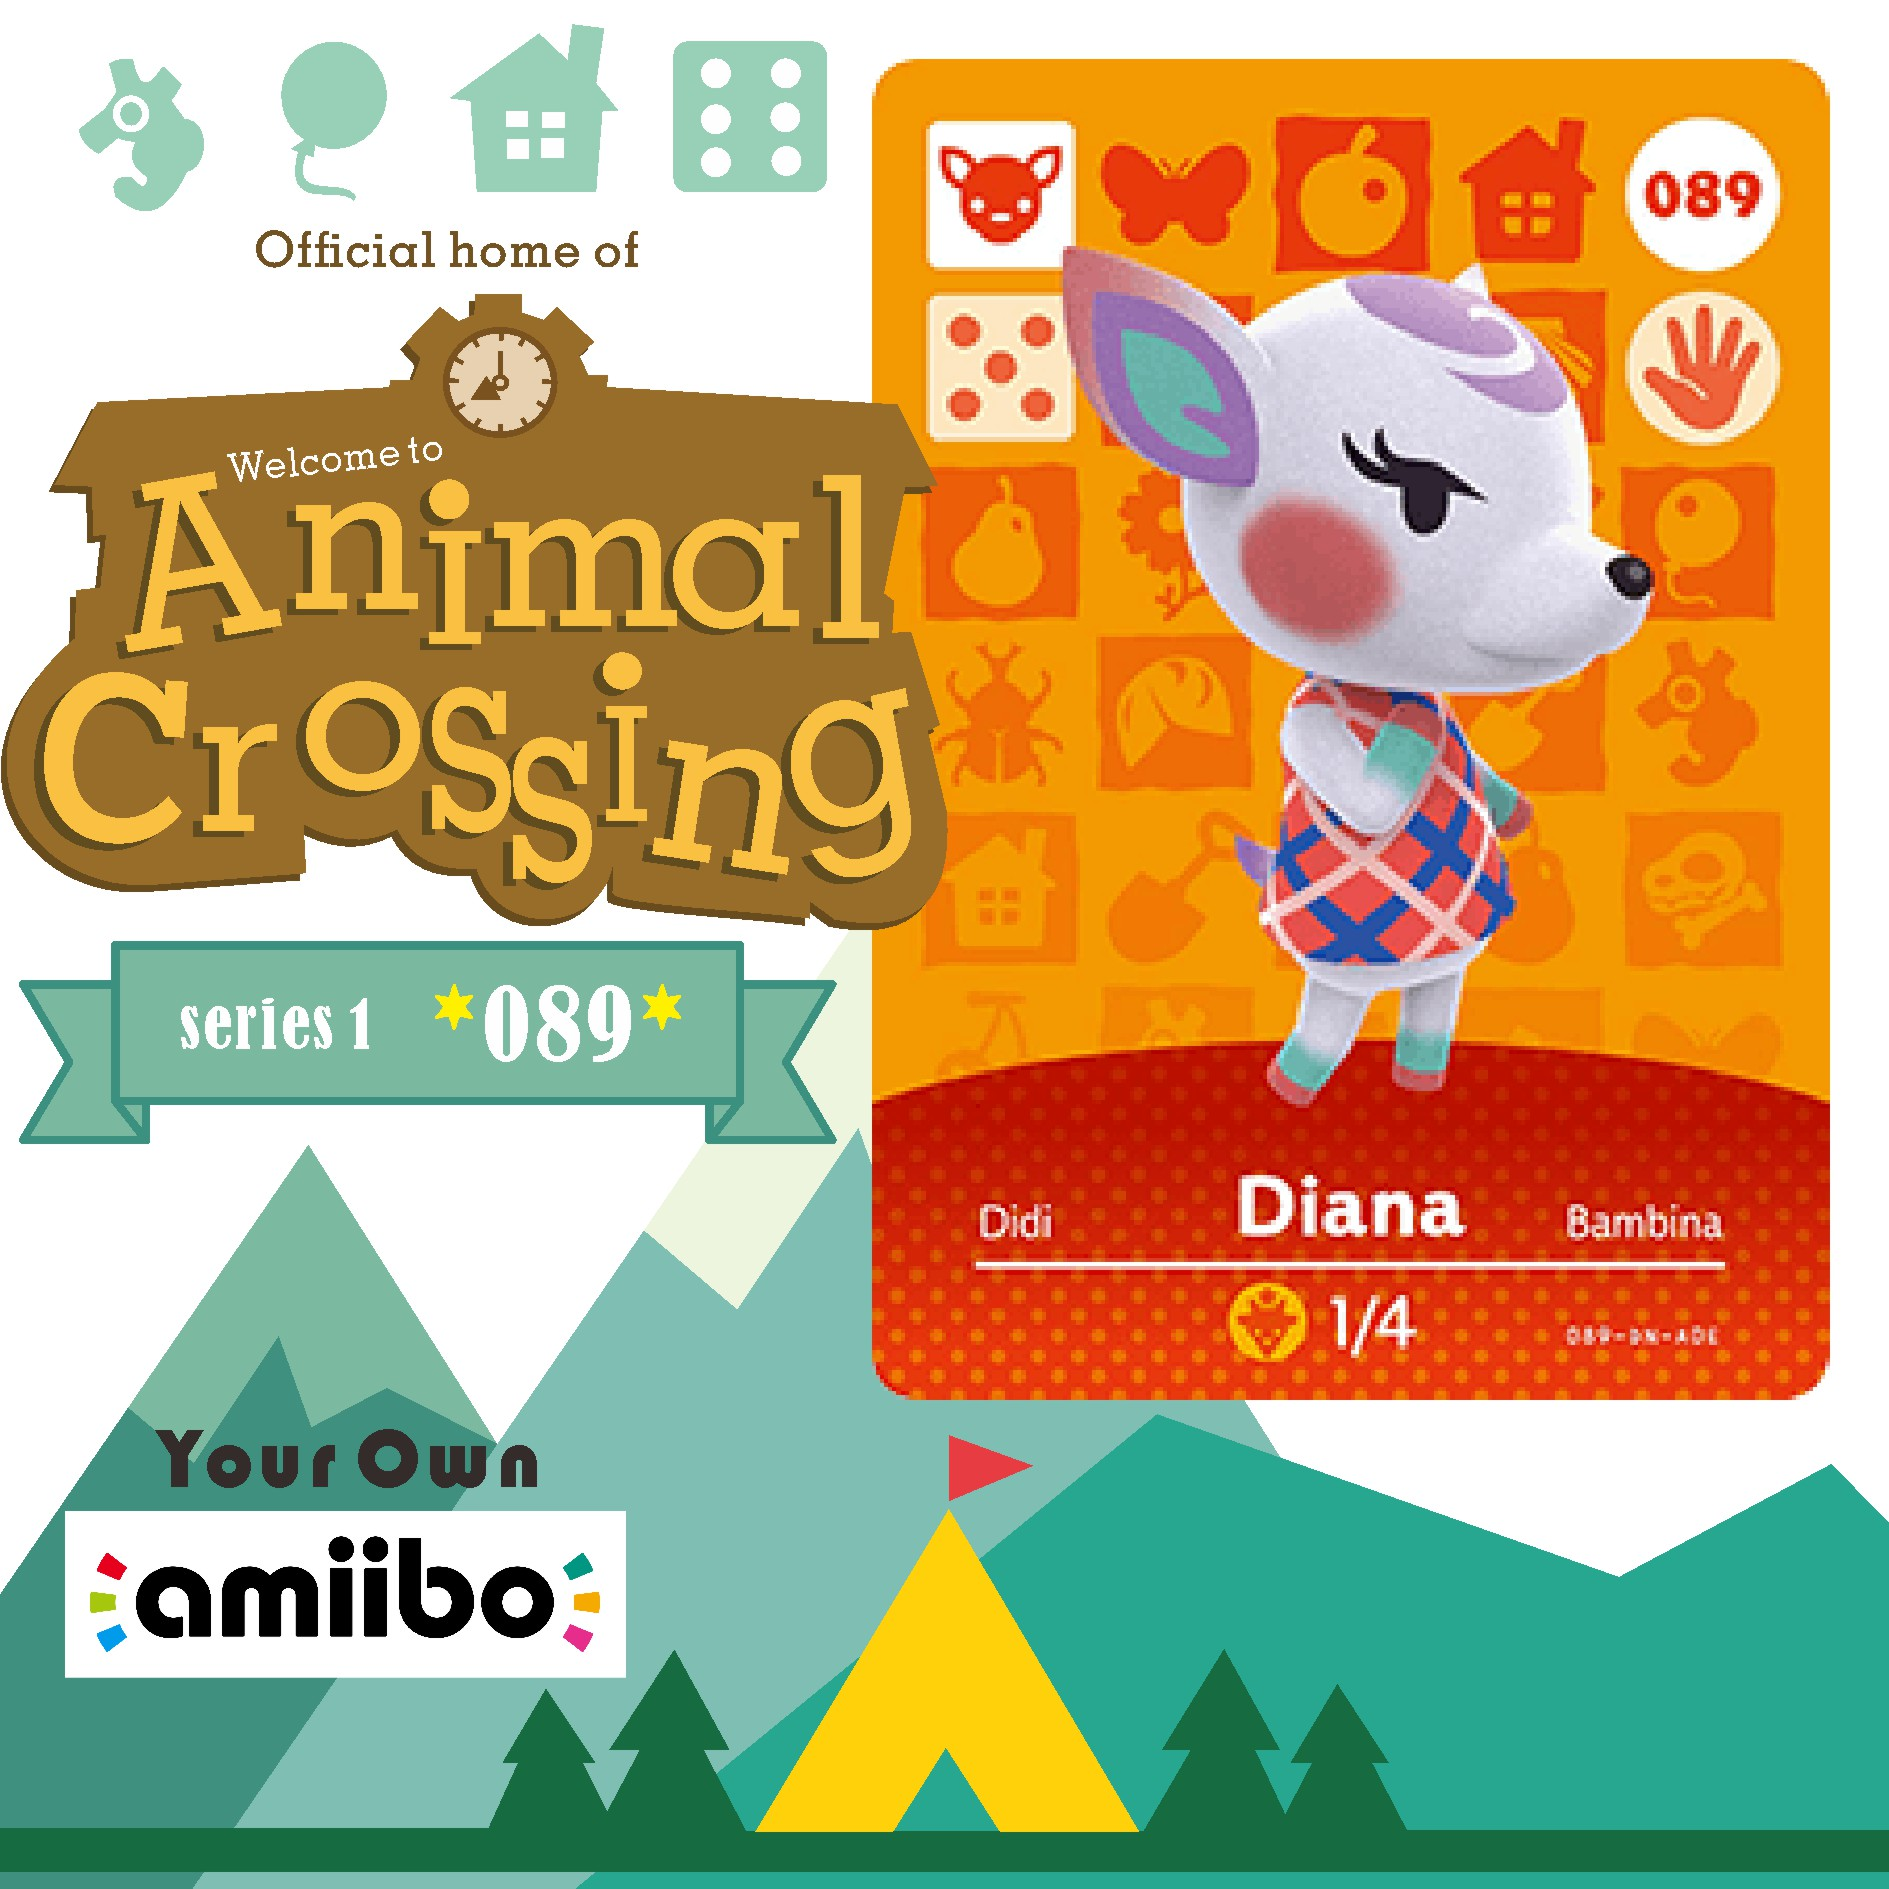 New 089 <font><b>Amiibo</b></font> Animal Crossing Diana Animal Crossing <font><b>Amiibo</b></font> Diana Villager <font><b>Amiibo</b></font> <font><b>Card</b></font> New Horizons <font><b>NFC</b></font> <font><b>Card</b></font> for Nintendo <font><b>Switch</b></font> image